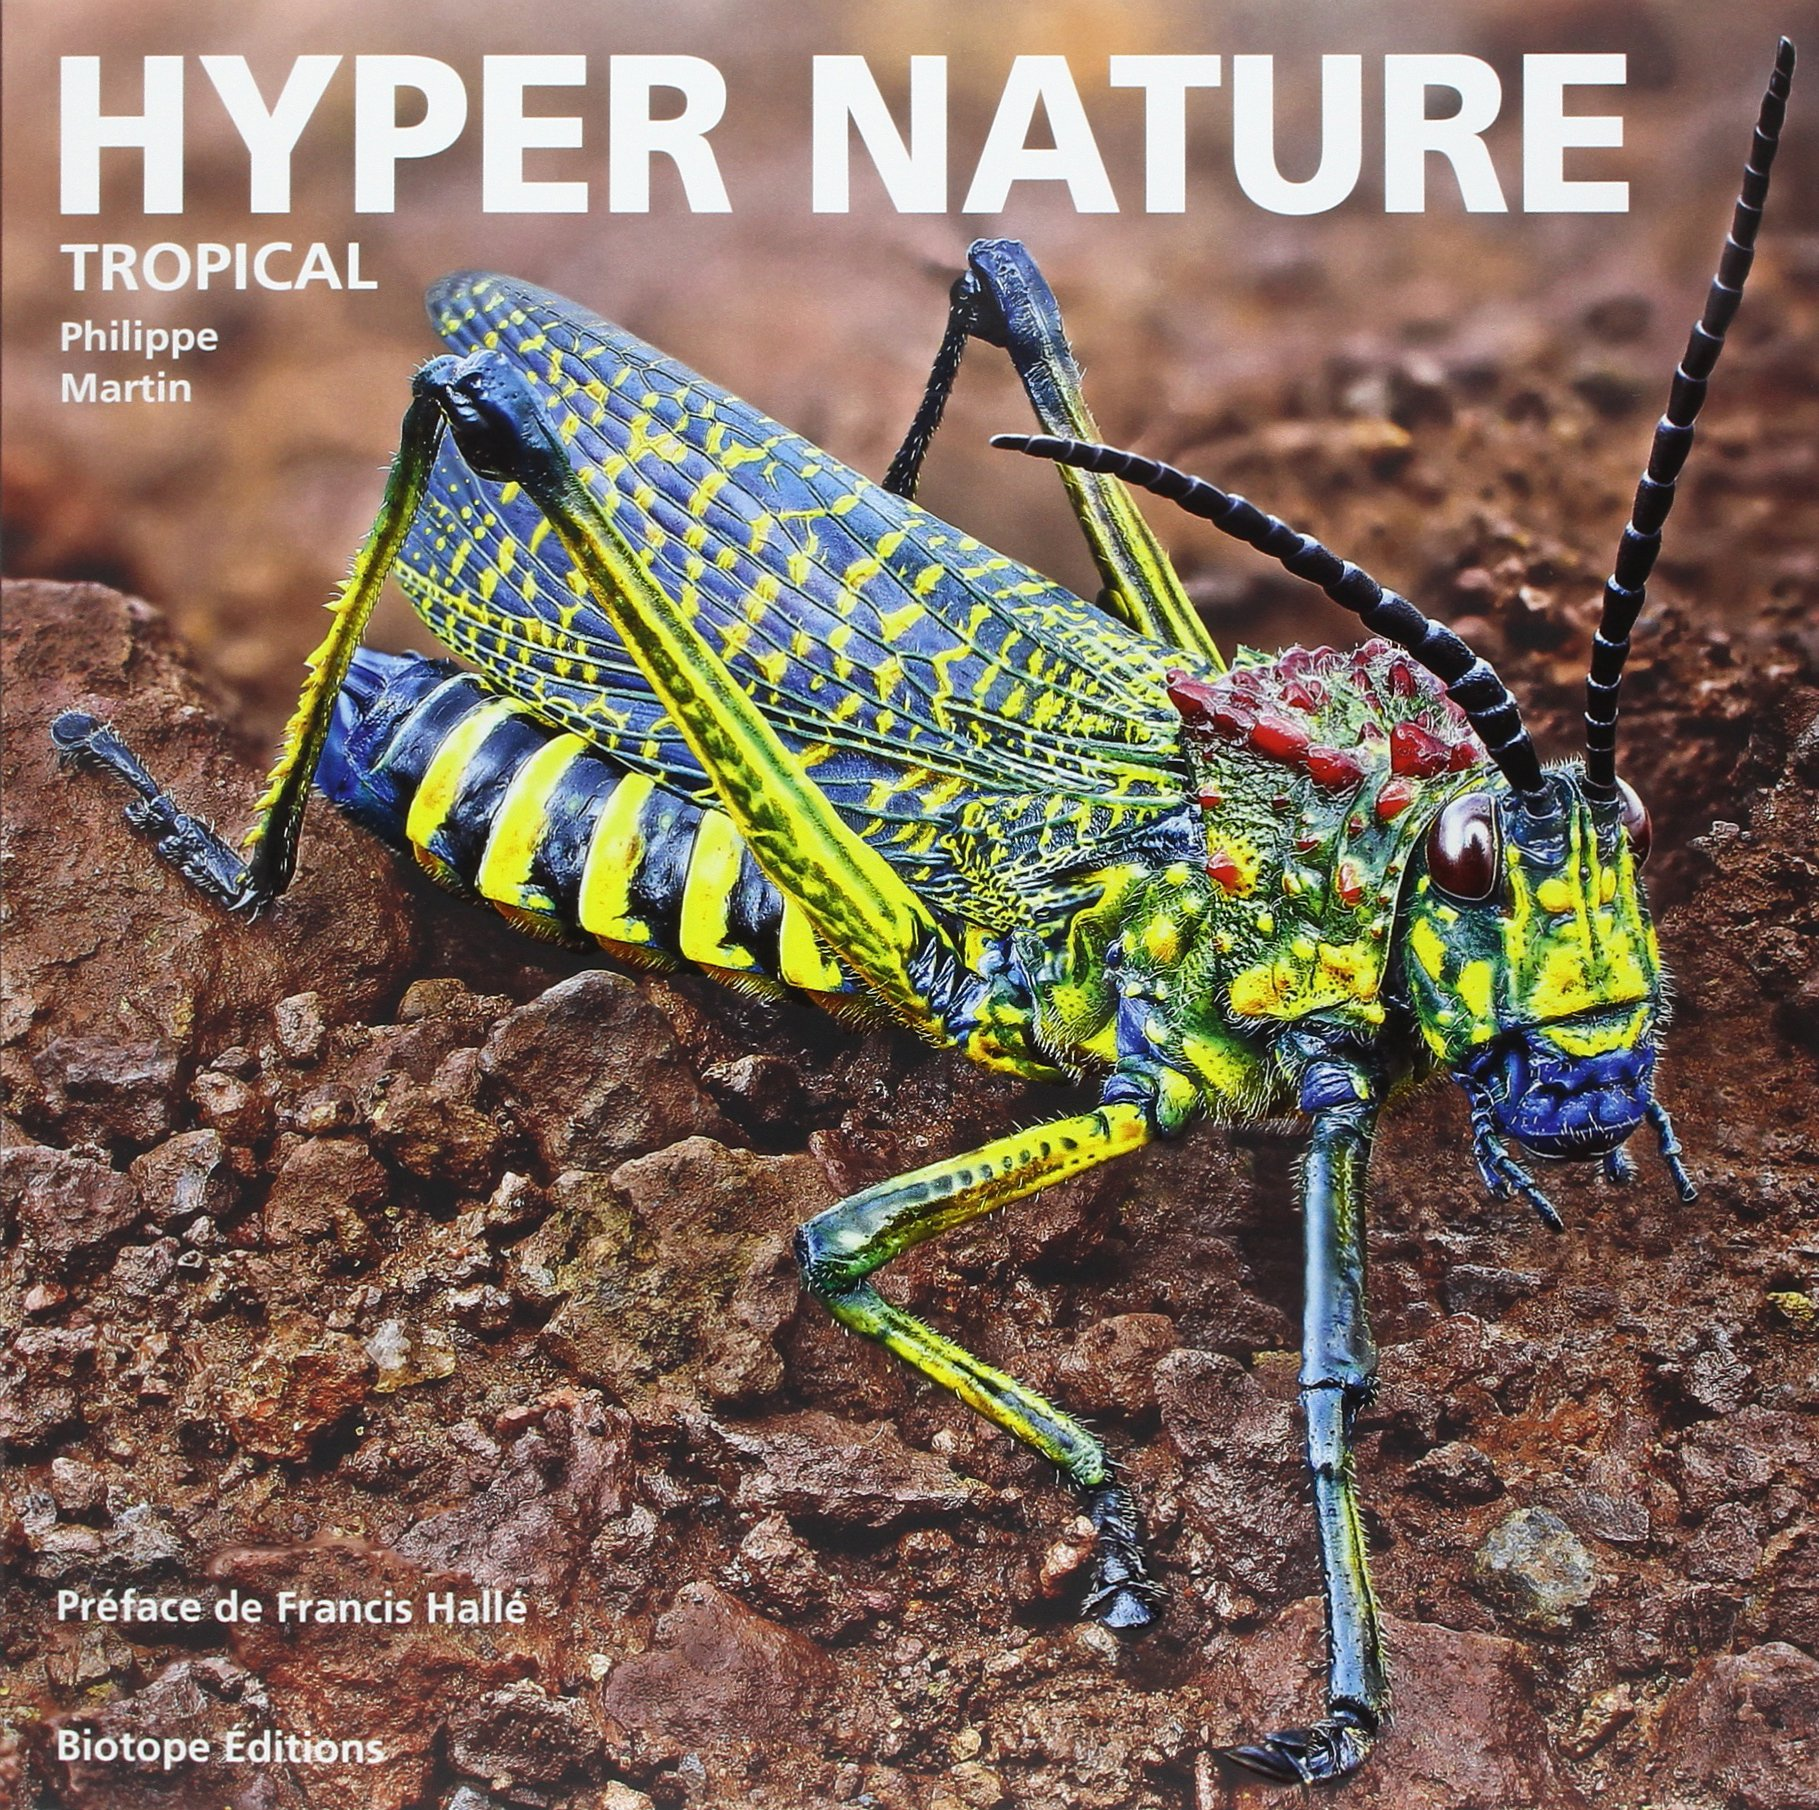 illustration ouvrage hyper nature focus stacking macrophotographie tropical